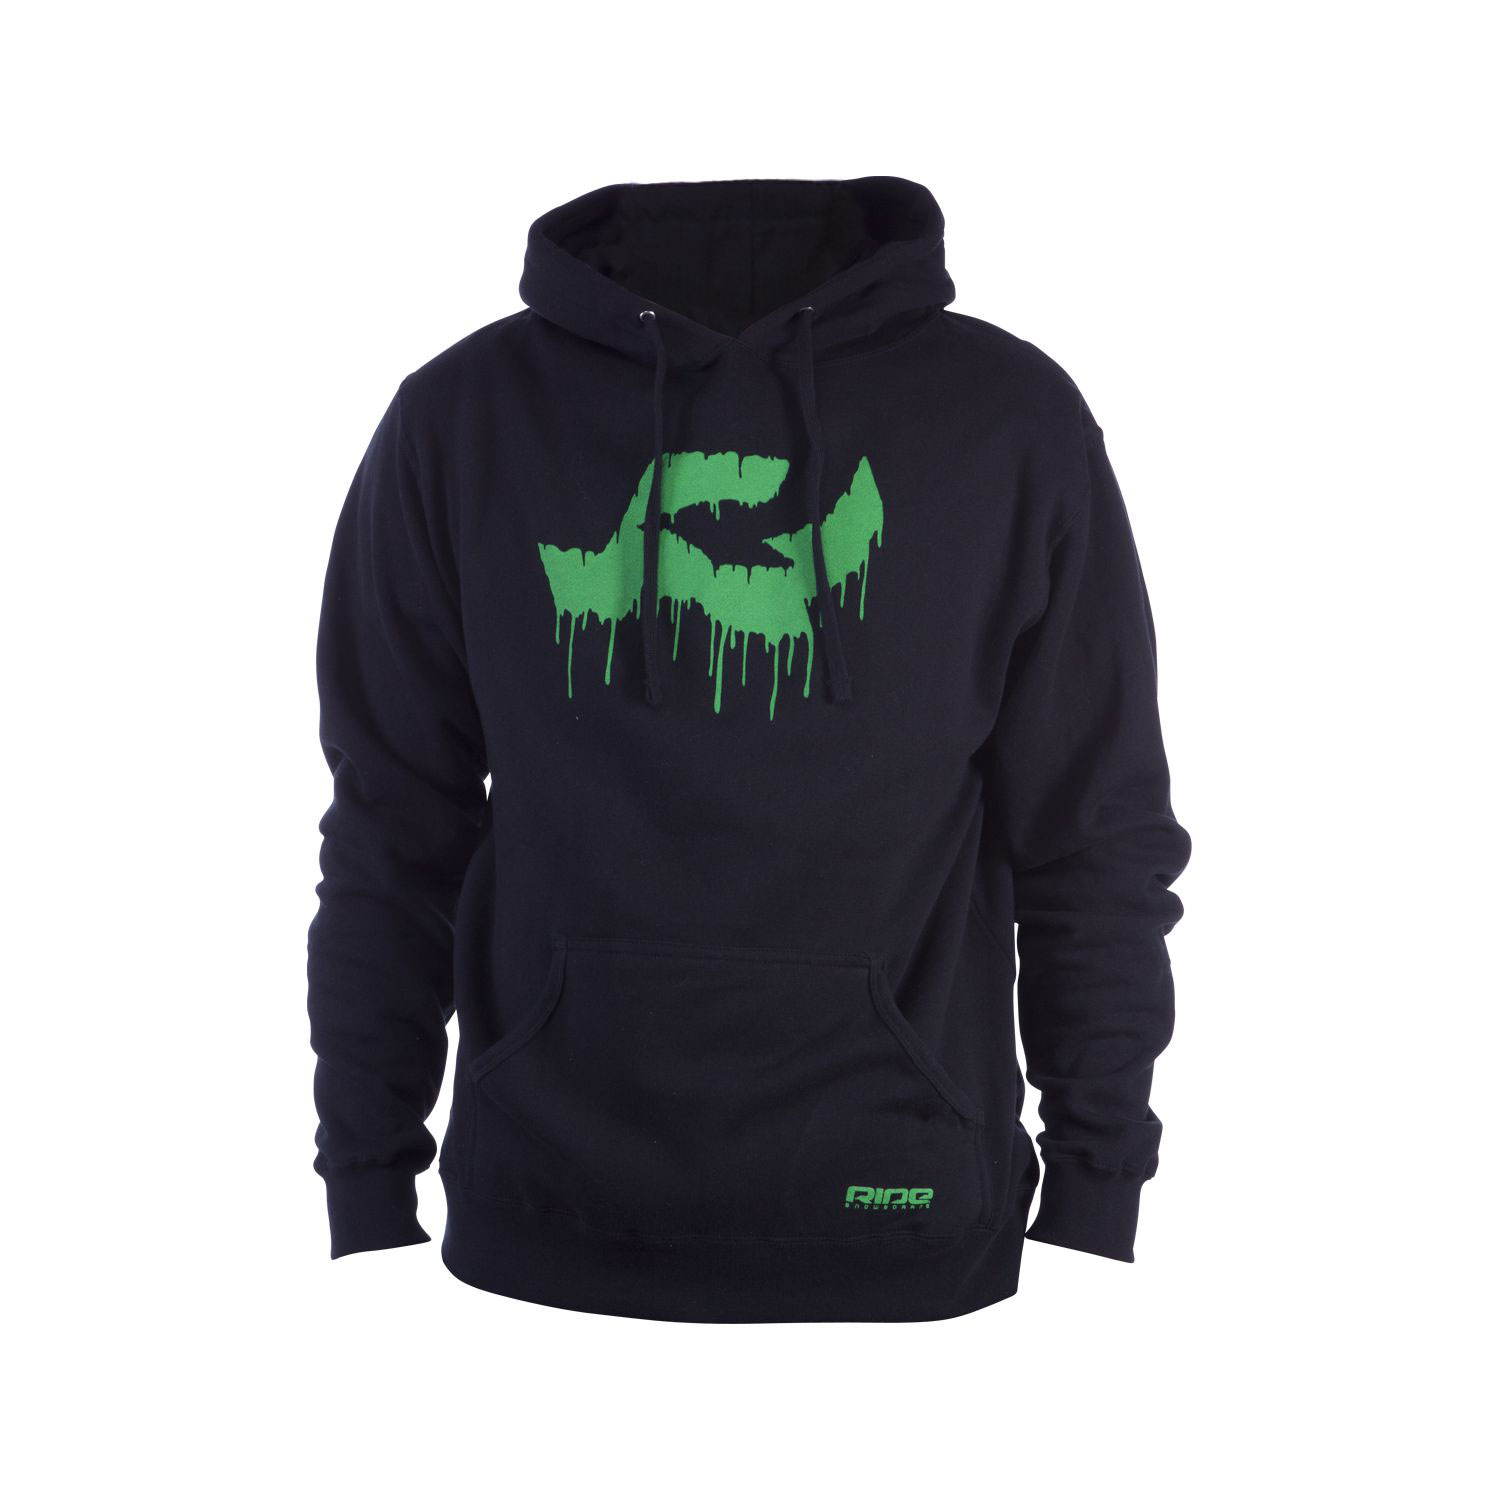 Key Features of the Ride Logo Drip Pullover Hoodie: 280g 80% Cotton / 20% Poly Center Front Screen Print Pocket Screen Print - $49.95